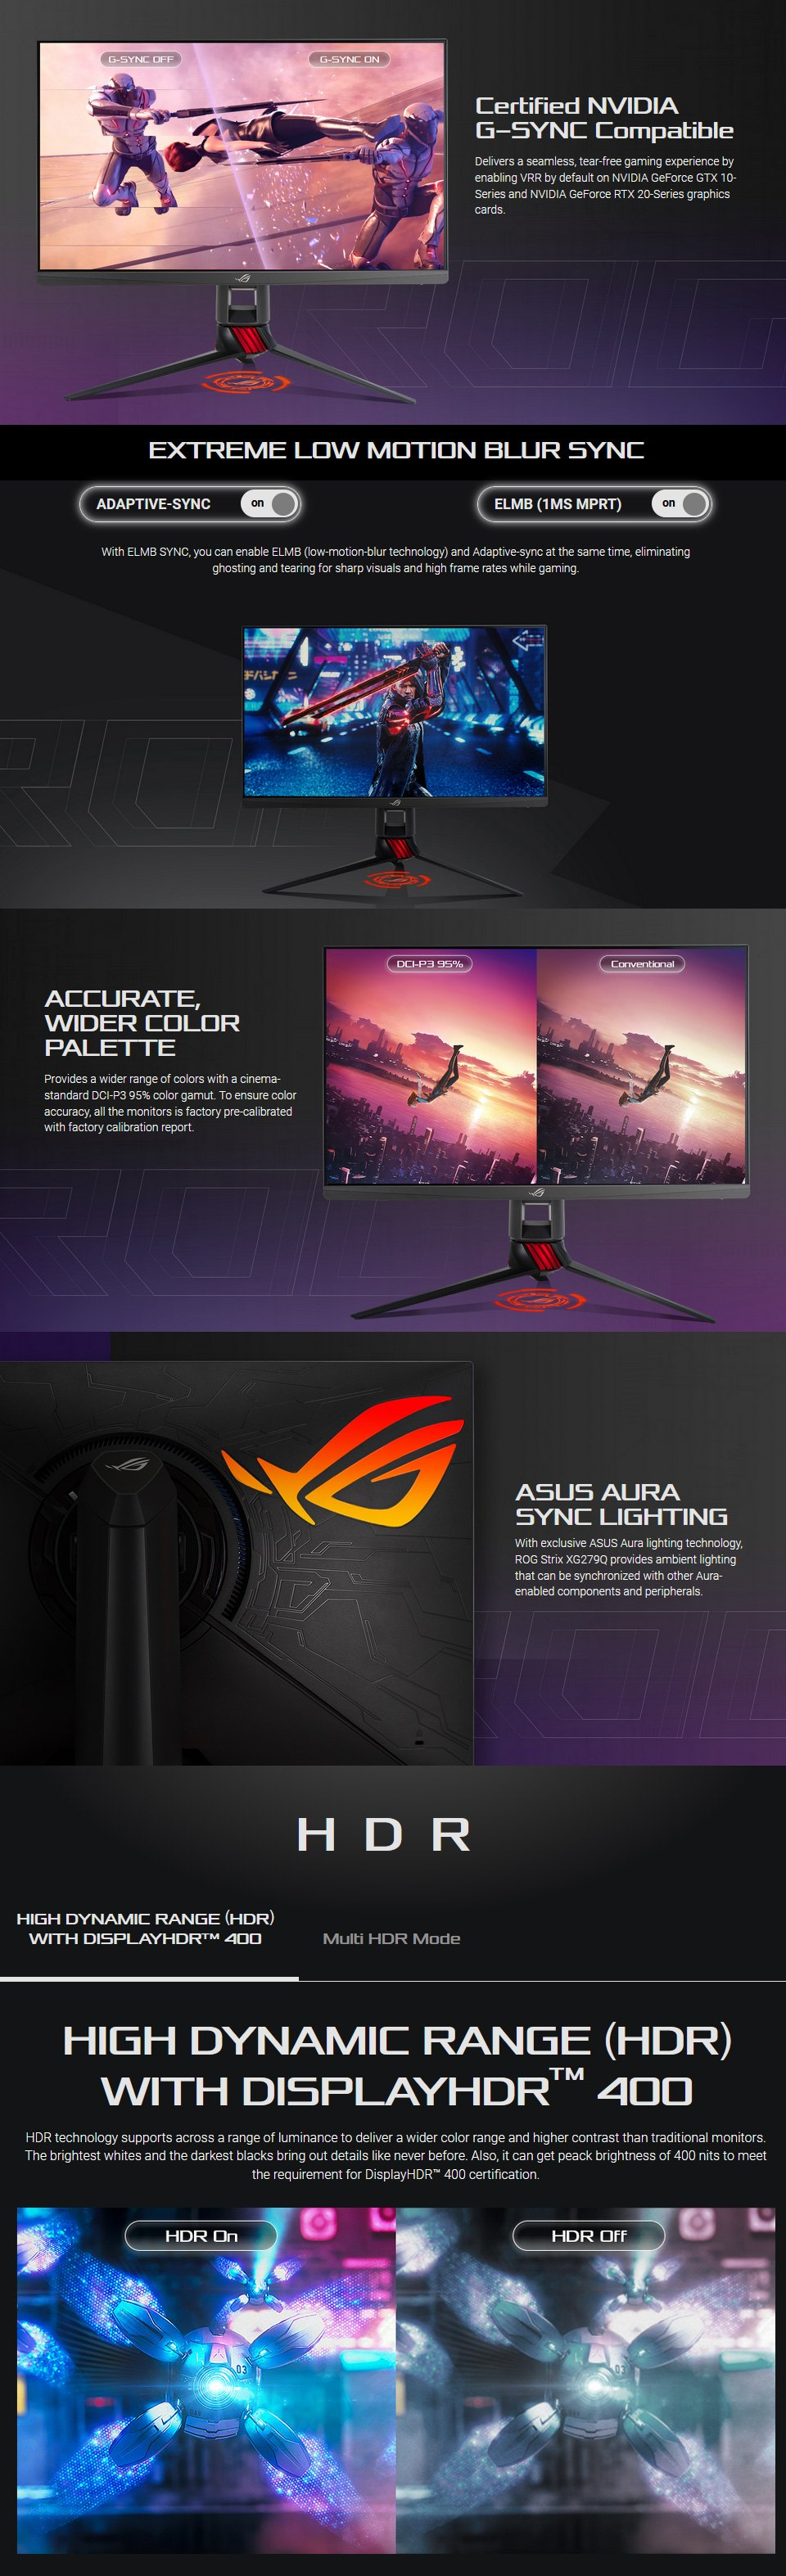 ASUS ROG XG279Q QHD 144hz+ FreeSync HDR 27in Monitor features 2